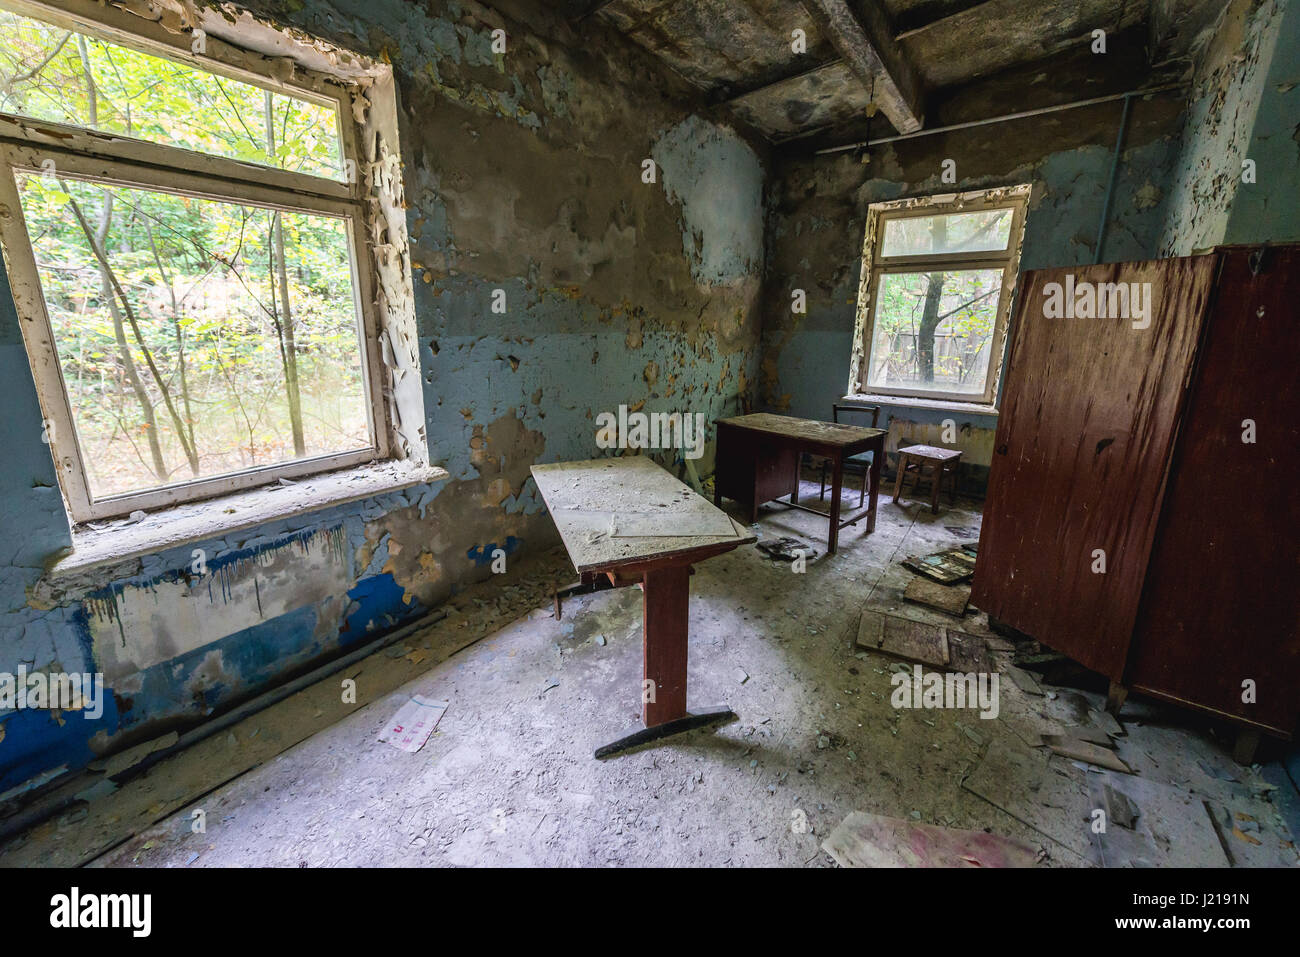 Underground Military Bases For Sale Interior Of An Abandoned Soviet Military Base Stock Photos